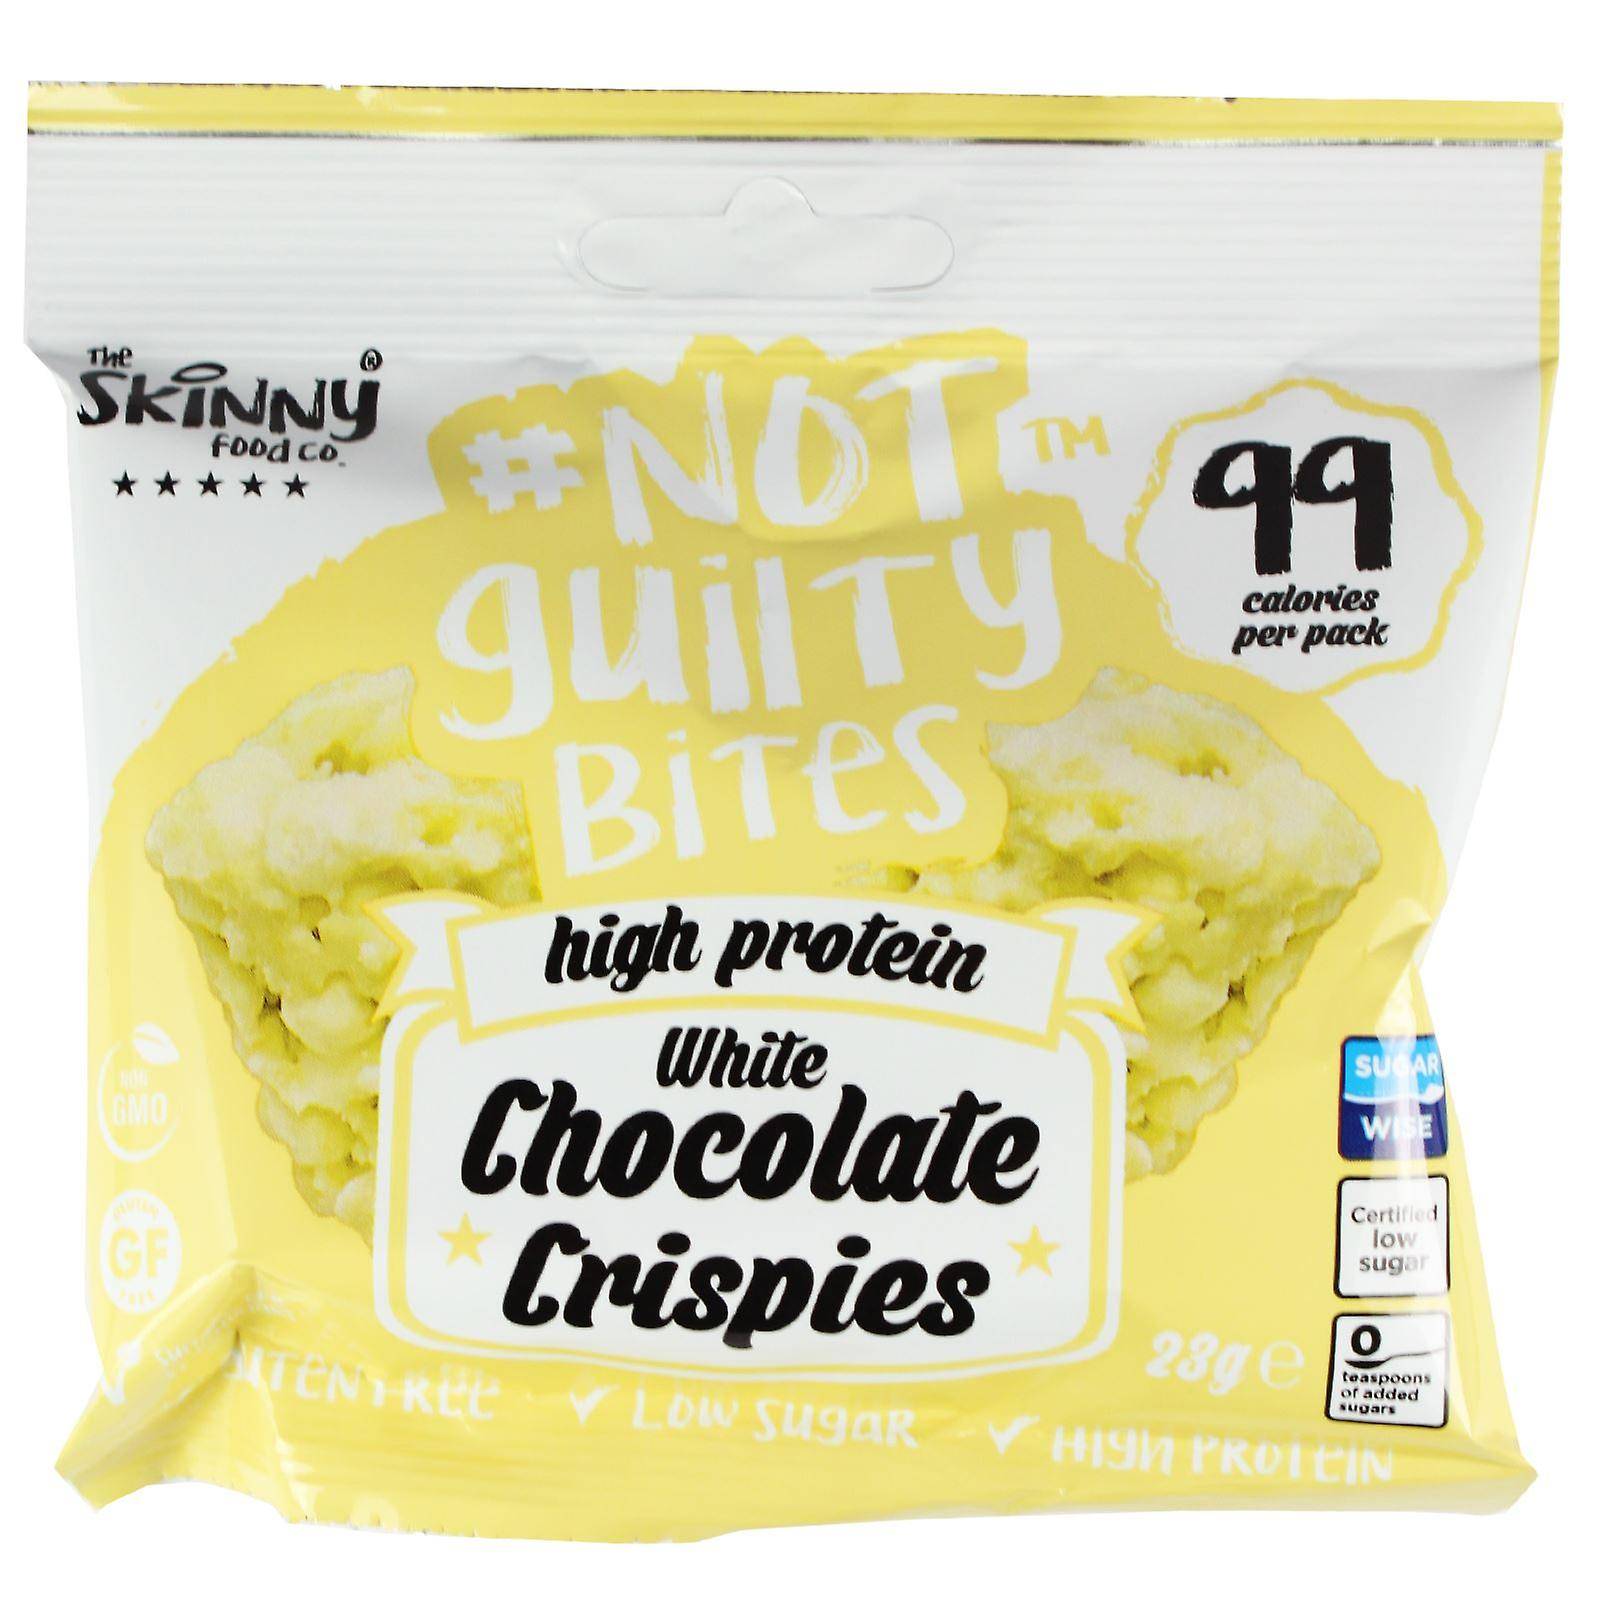 Skinny Foods Not Guilty Bites  White Chocolate Crispies 23g Pack